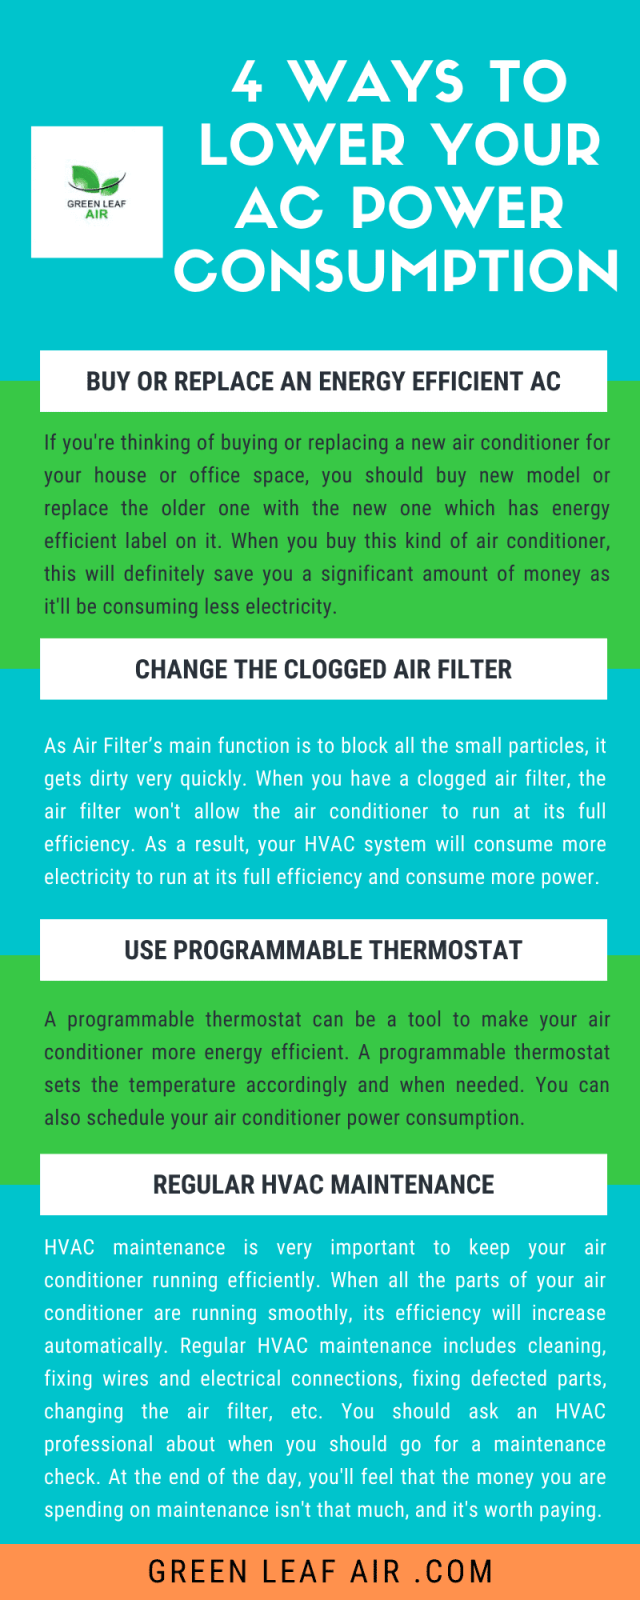 4 Ways to Lower Your AC Power Consumption